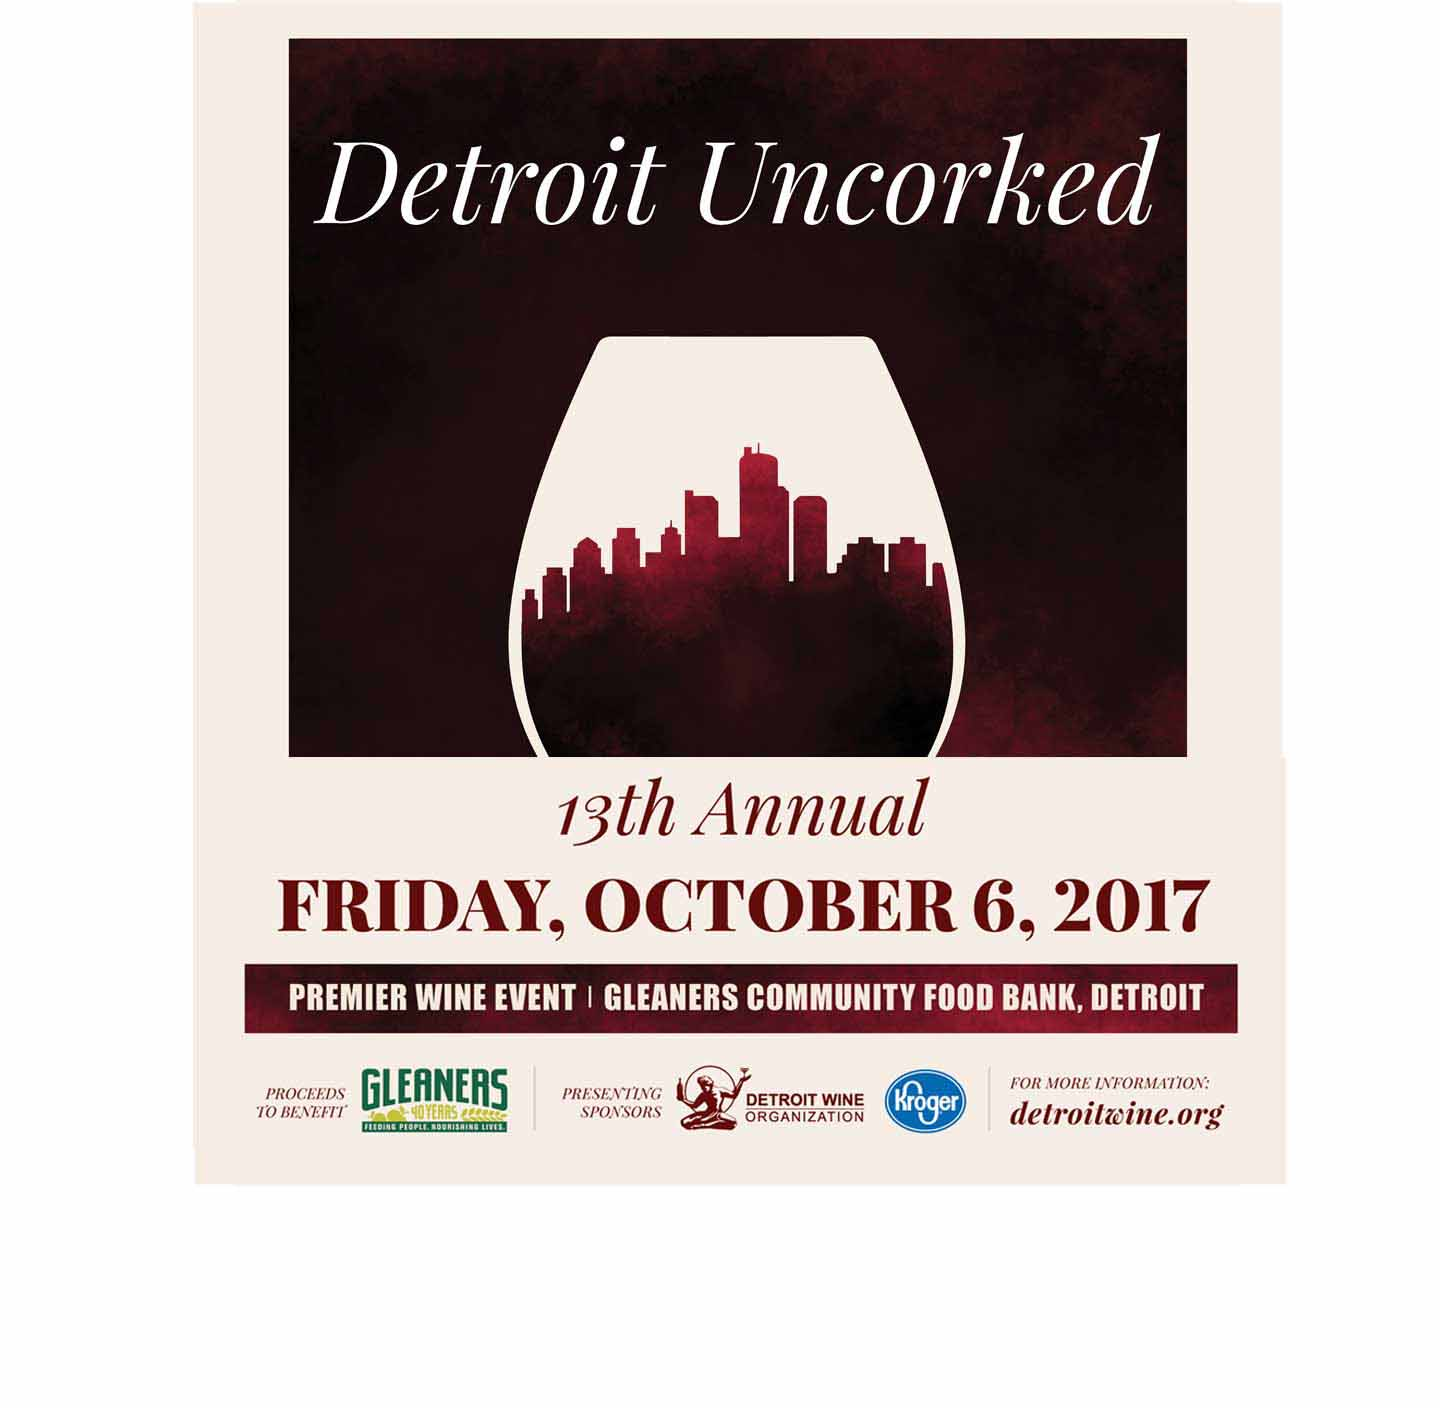 Detroit Uncorked 2017